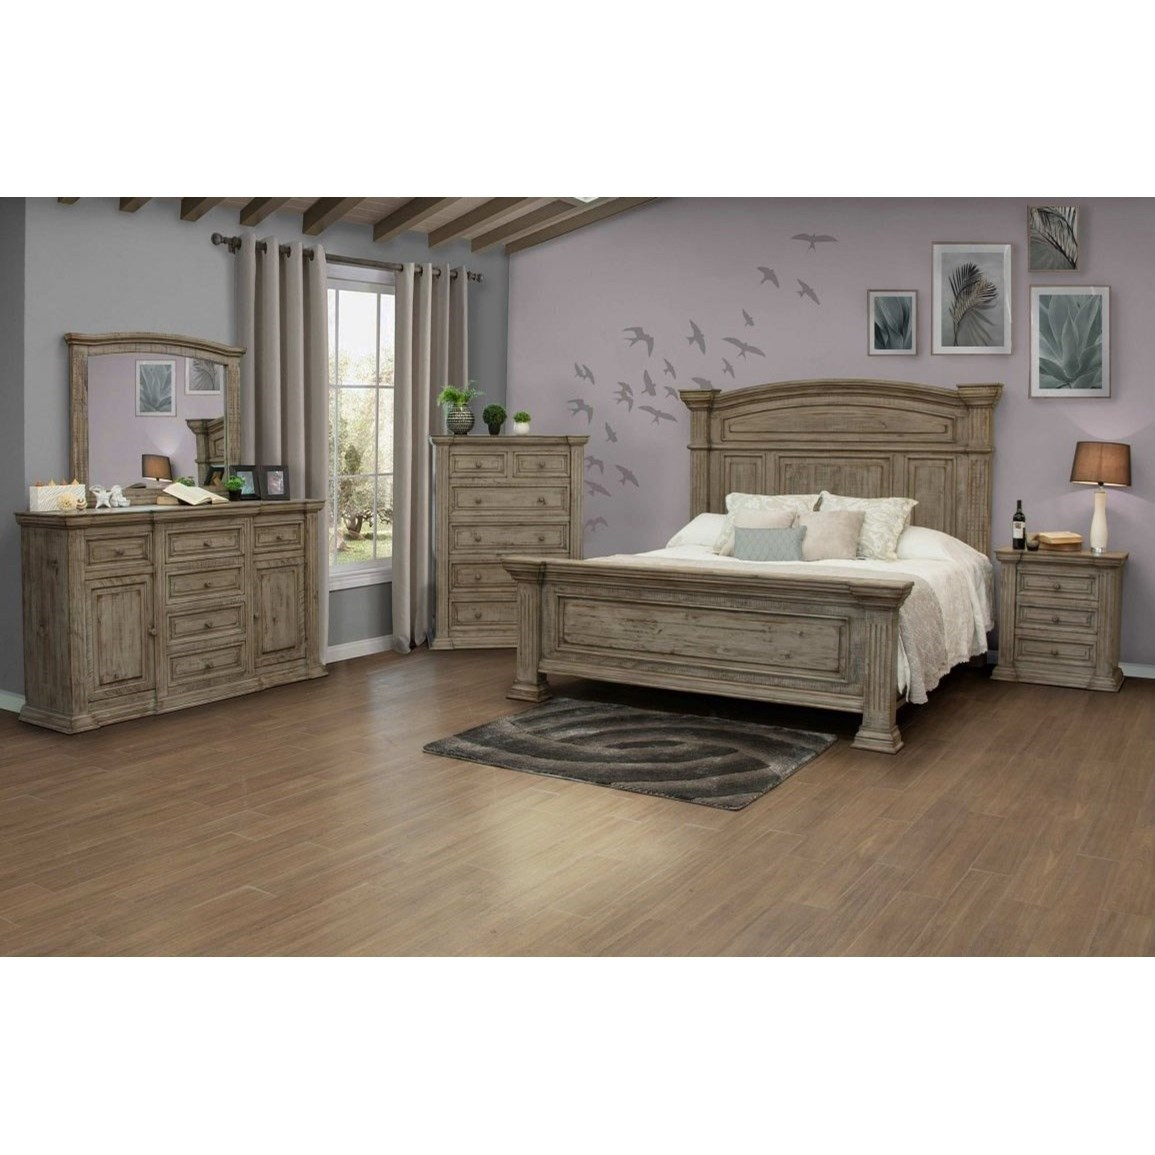 Direct Bedroom Furniture: International Furniture Direct Palace Queen Bedroom Group